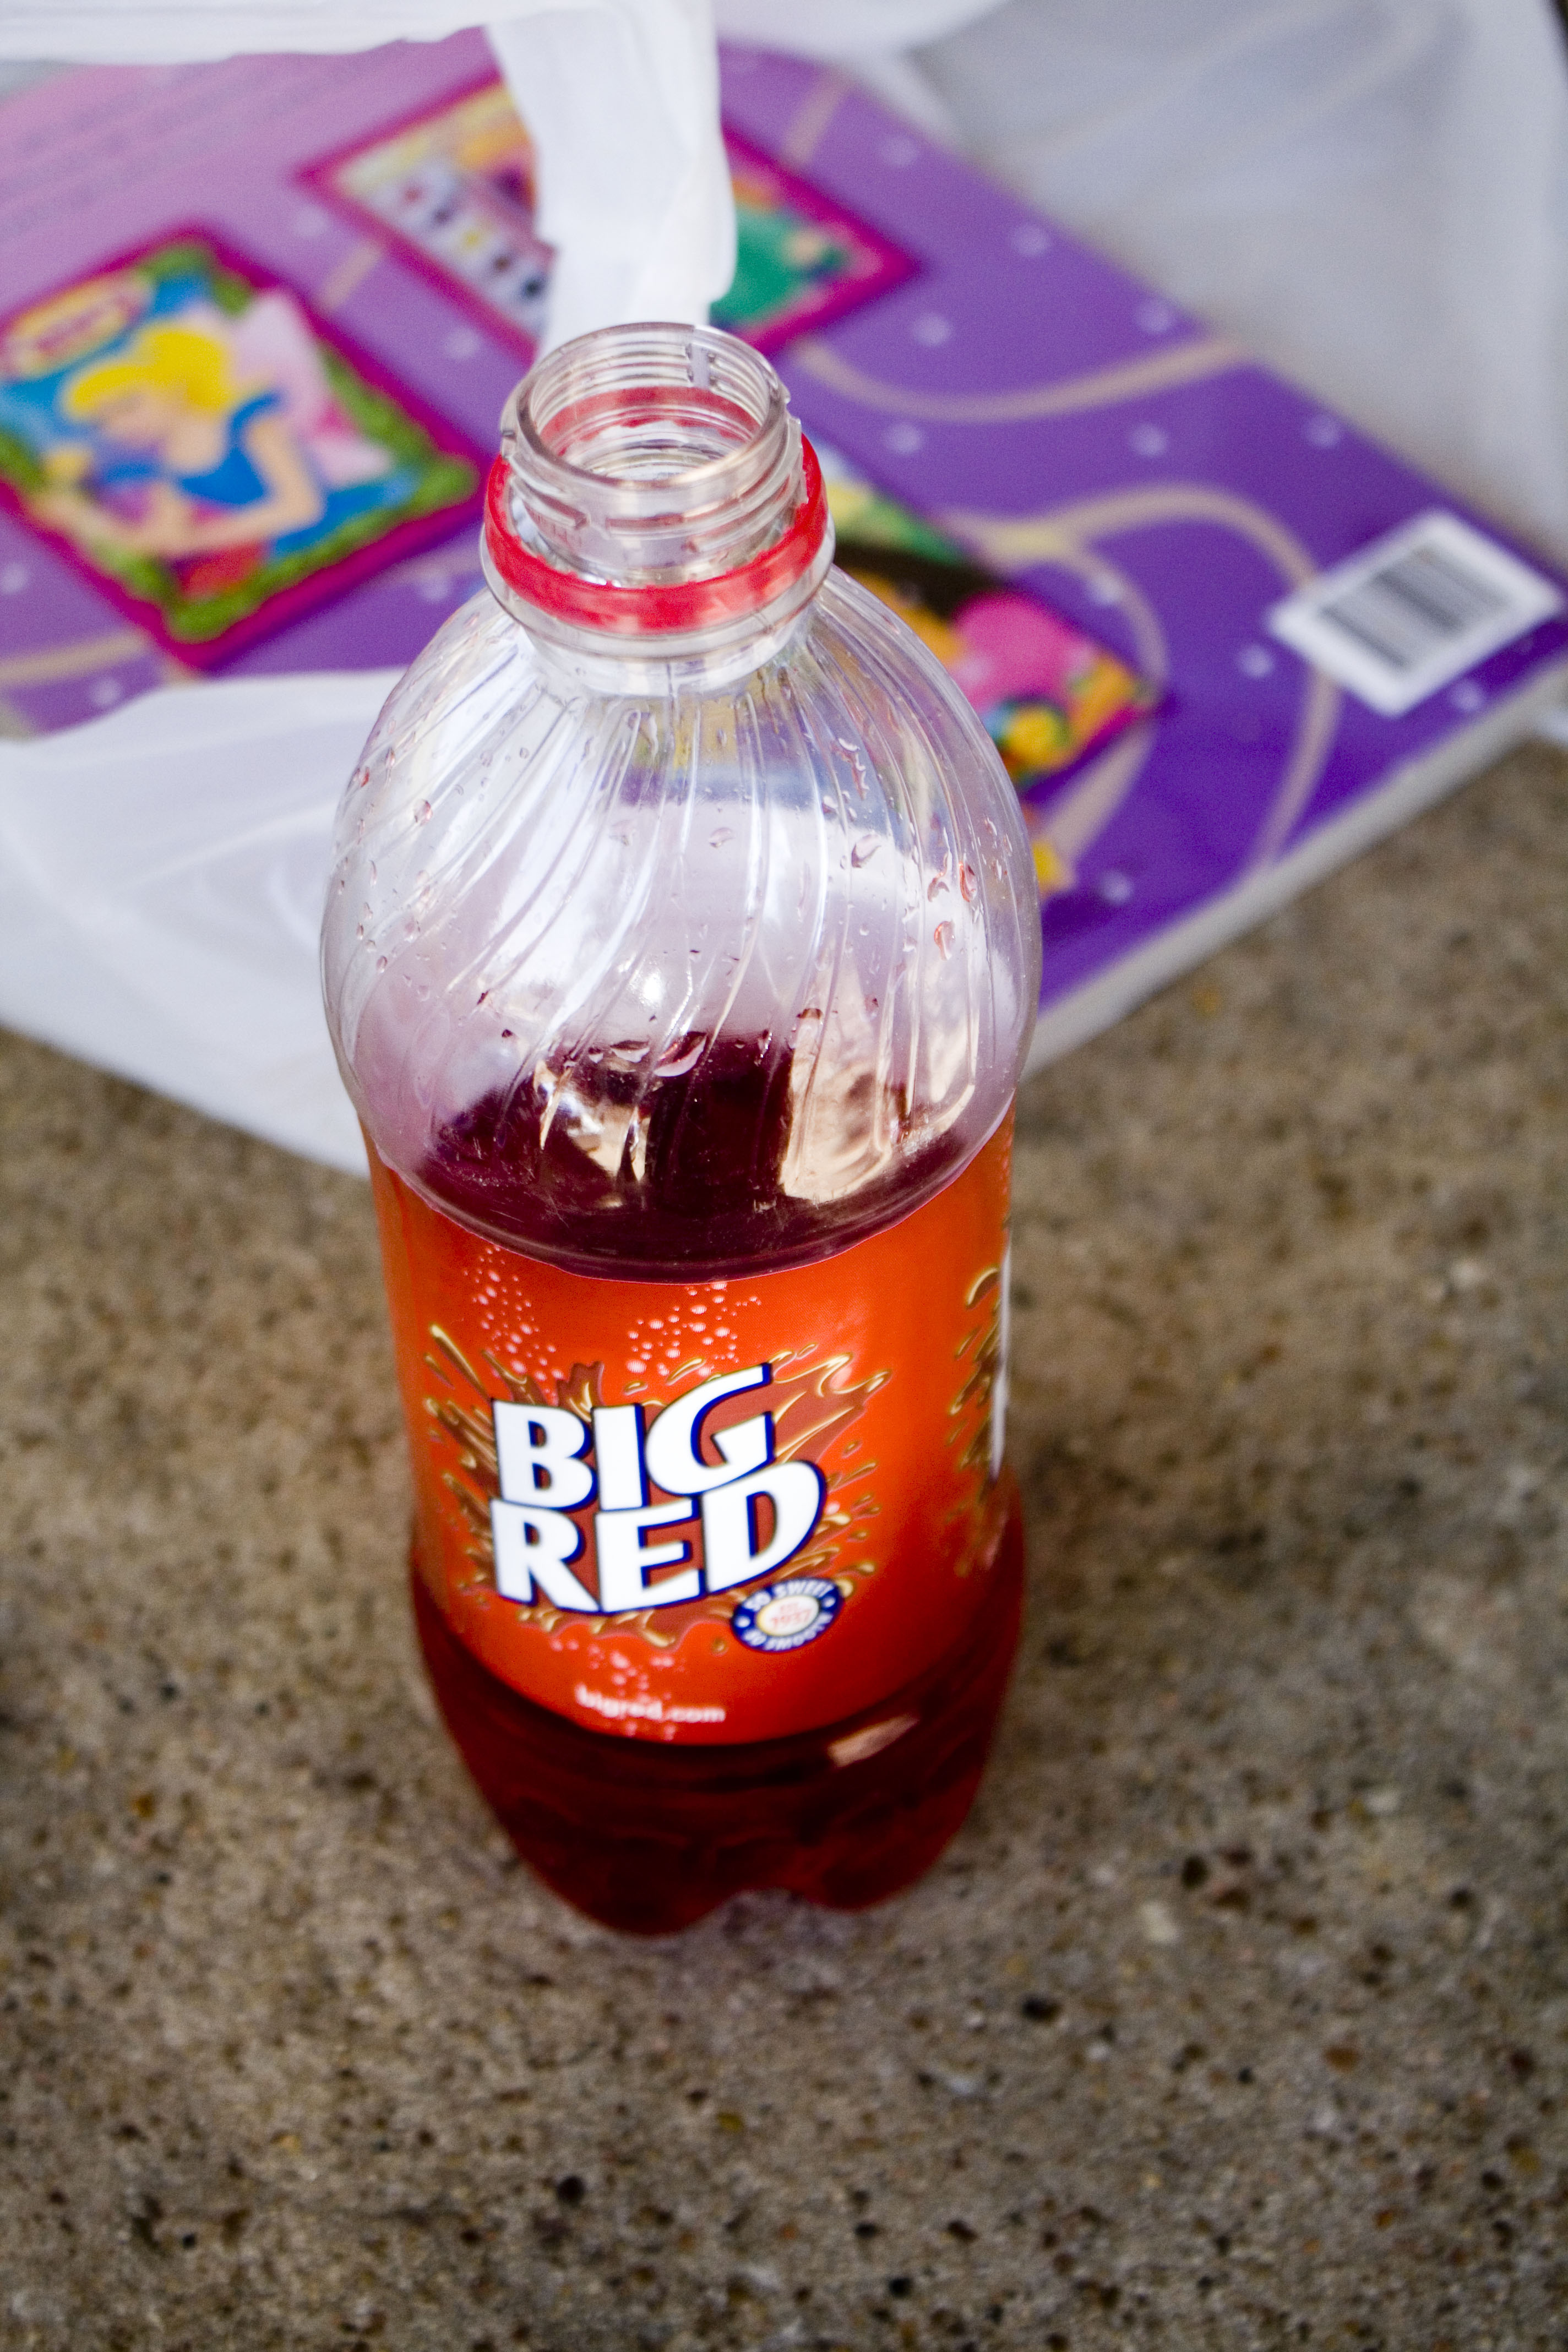 Big Red